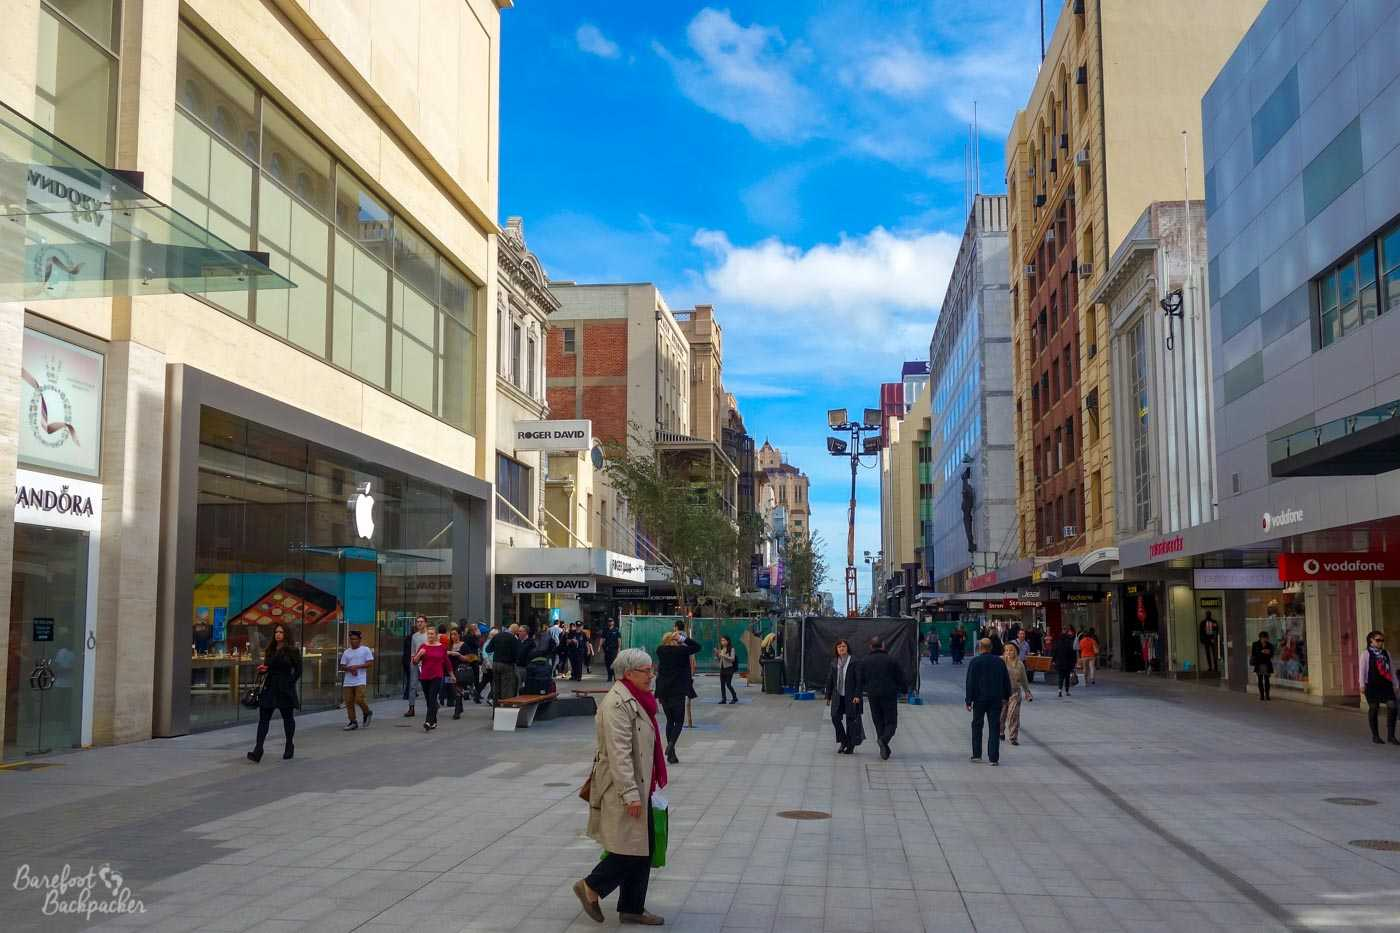 A shot down Rundle Mall. It's a typical pedestrianised city centre street, with shops either side. Could be anywhere in the UK, tbh, except it's not.